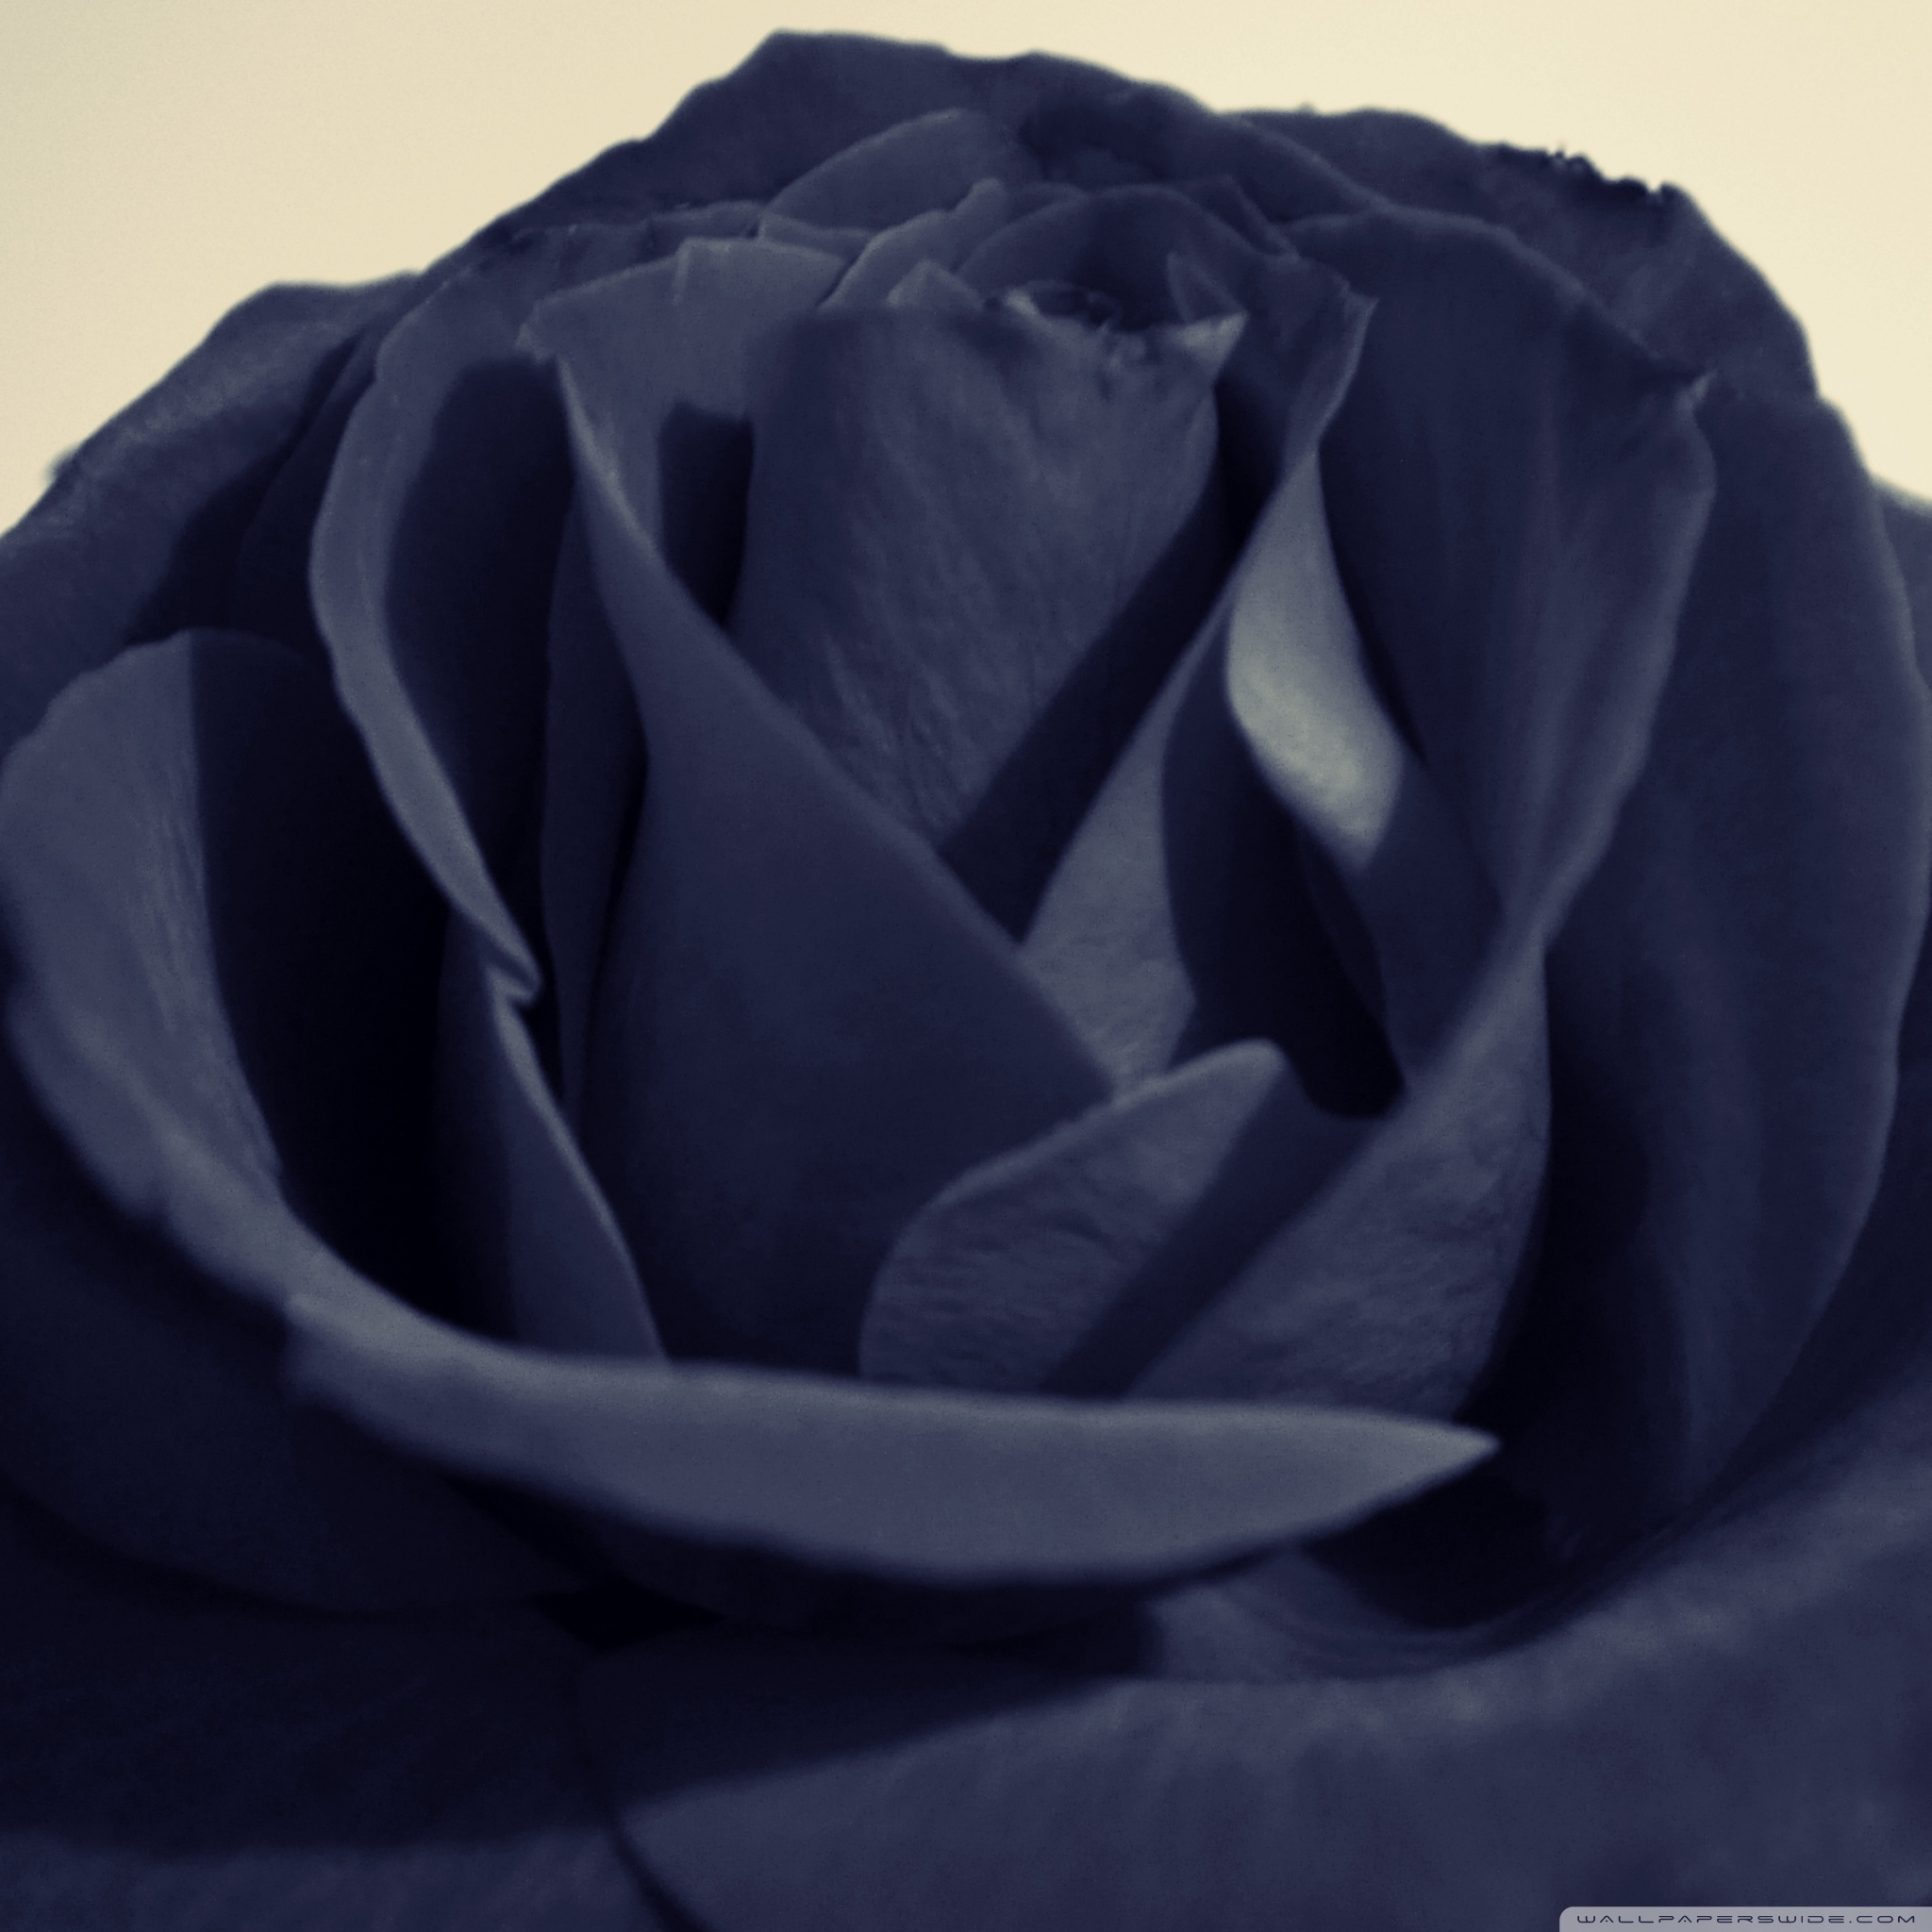 black rose 2 wallpapers